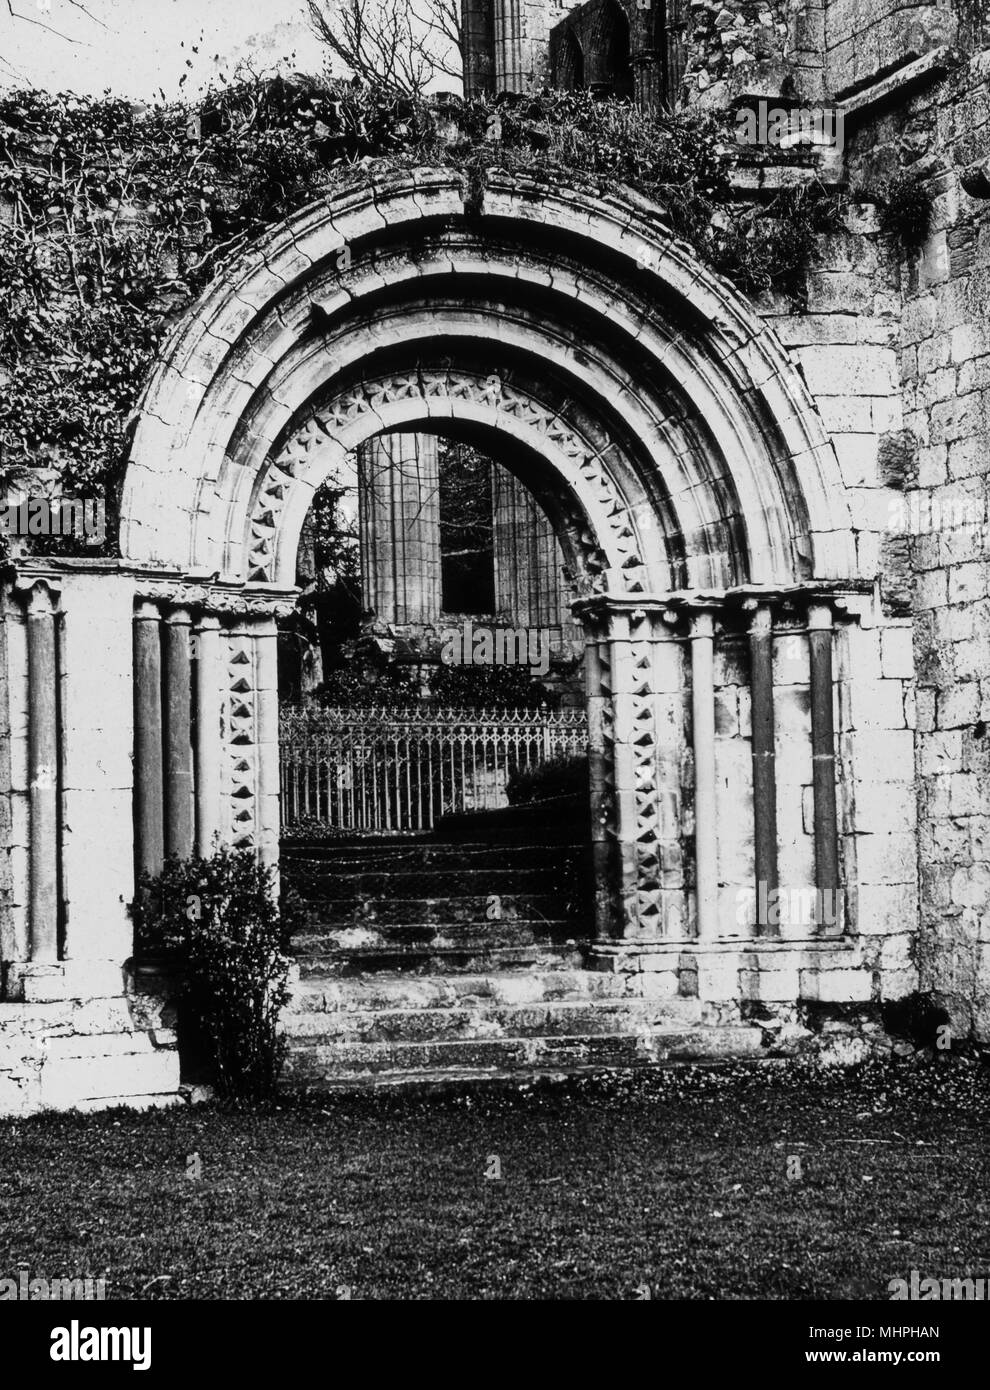 Cloister door, Dryburgh Abbey (Premonstratensian Order, or White Canons), near Dryburgh, Scotland, dating back to the 12th century.      Date: circa 1900s - Stock Image